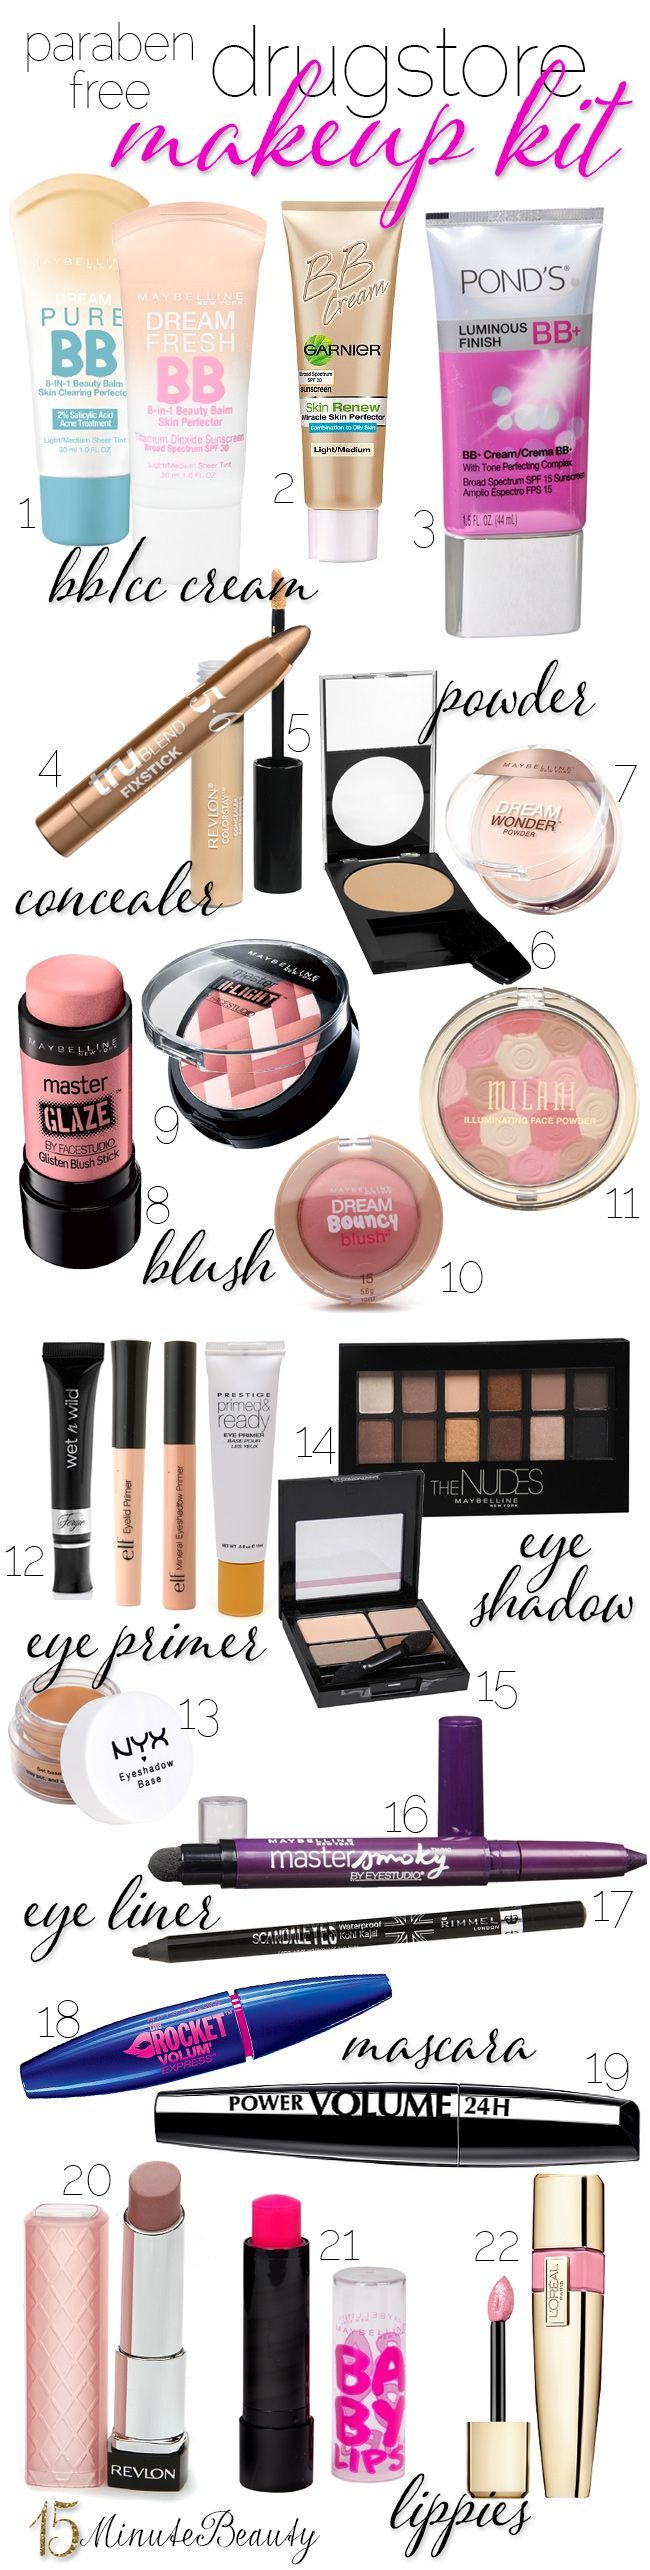 15 Minute Beauty Fanatic: Paraben Free Drugstore Makeup Kit: Yes, It Is Possible!